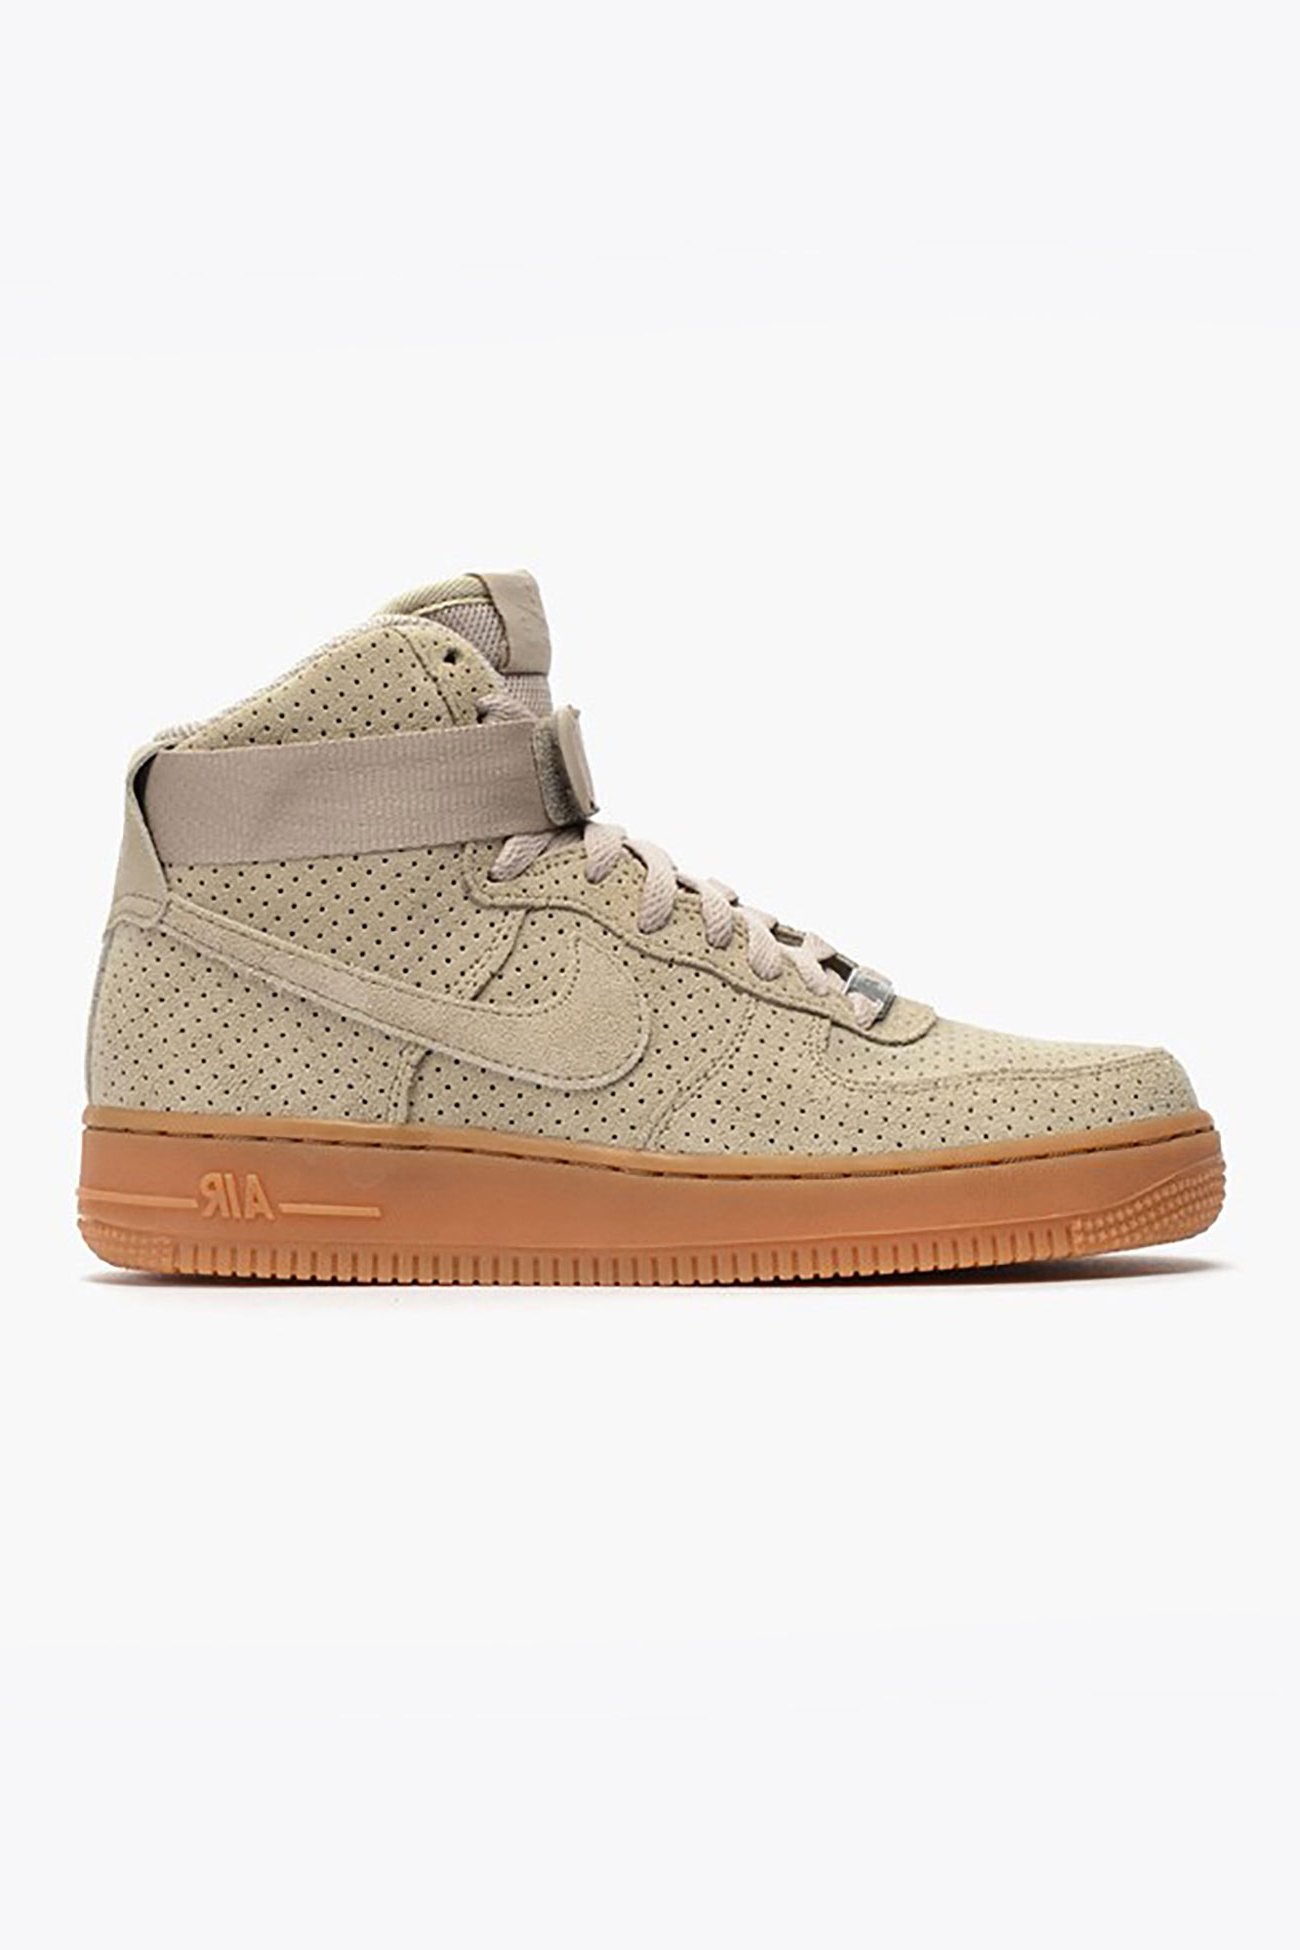 nike air force 1 high suede in beige lyst. Black Bedroom Furniture Sets. Home Design Ideas